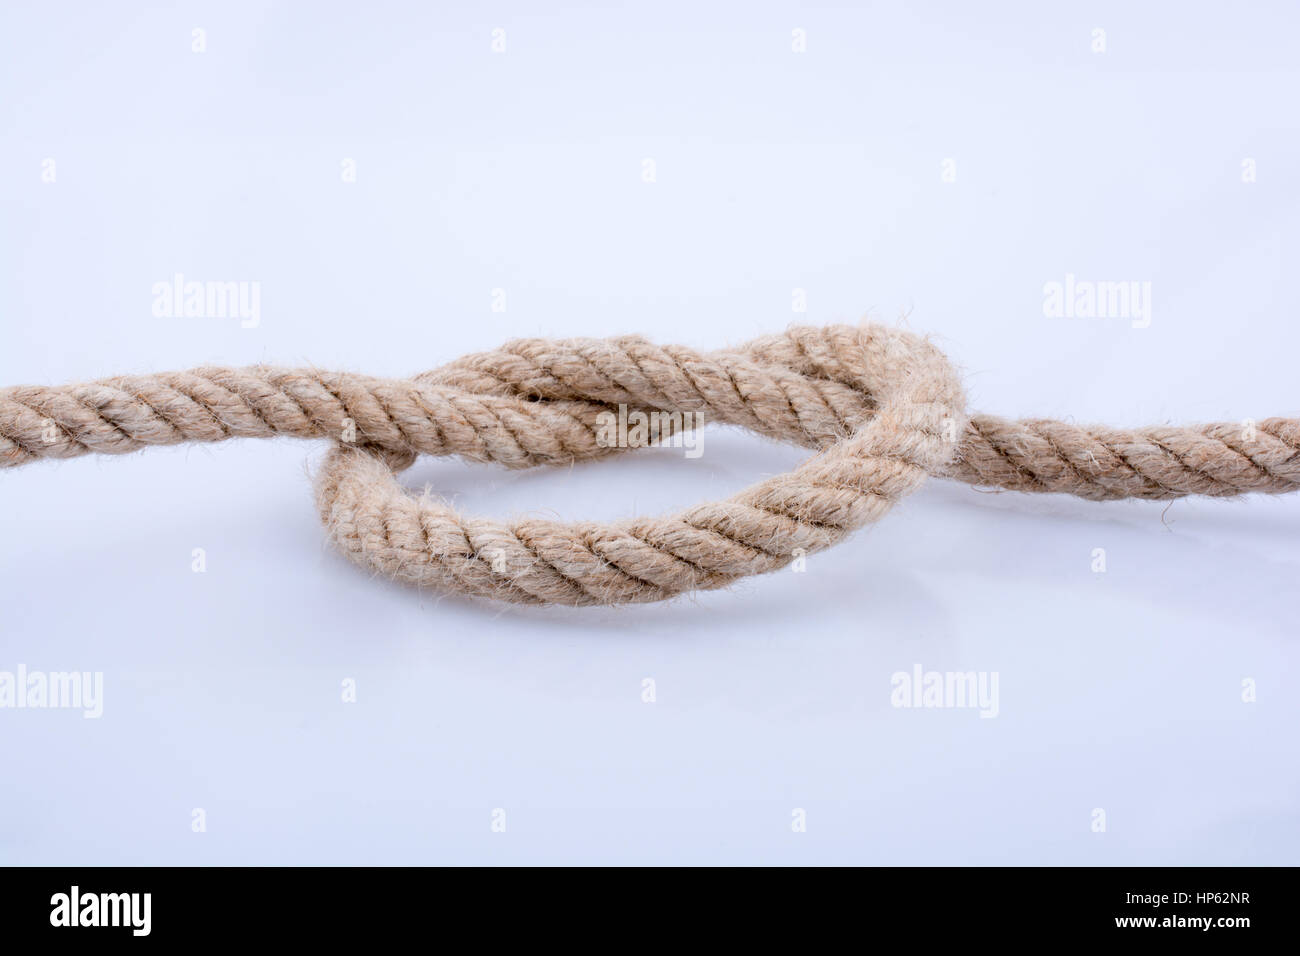 Bowline Knot Stock Photos Images Page 3 Alamy Diagram Of Rope On A White Background Image